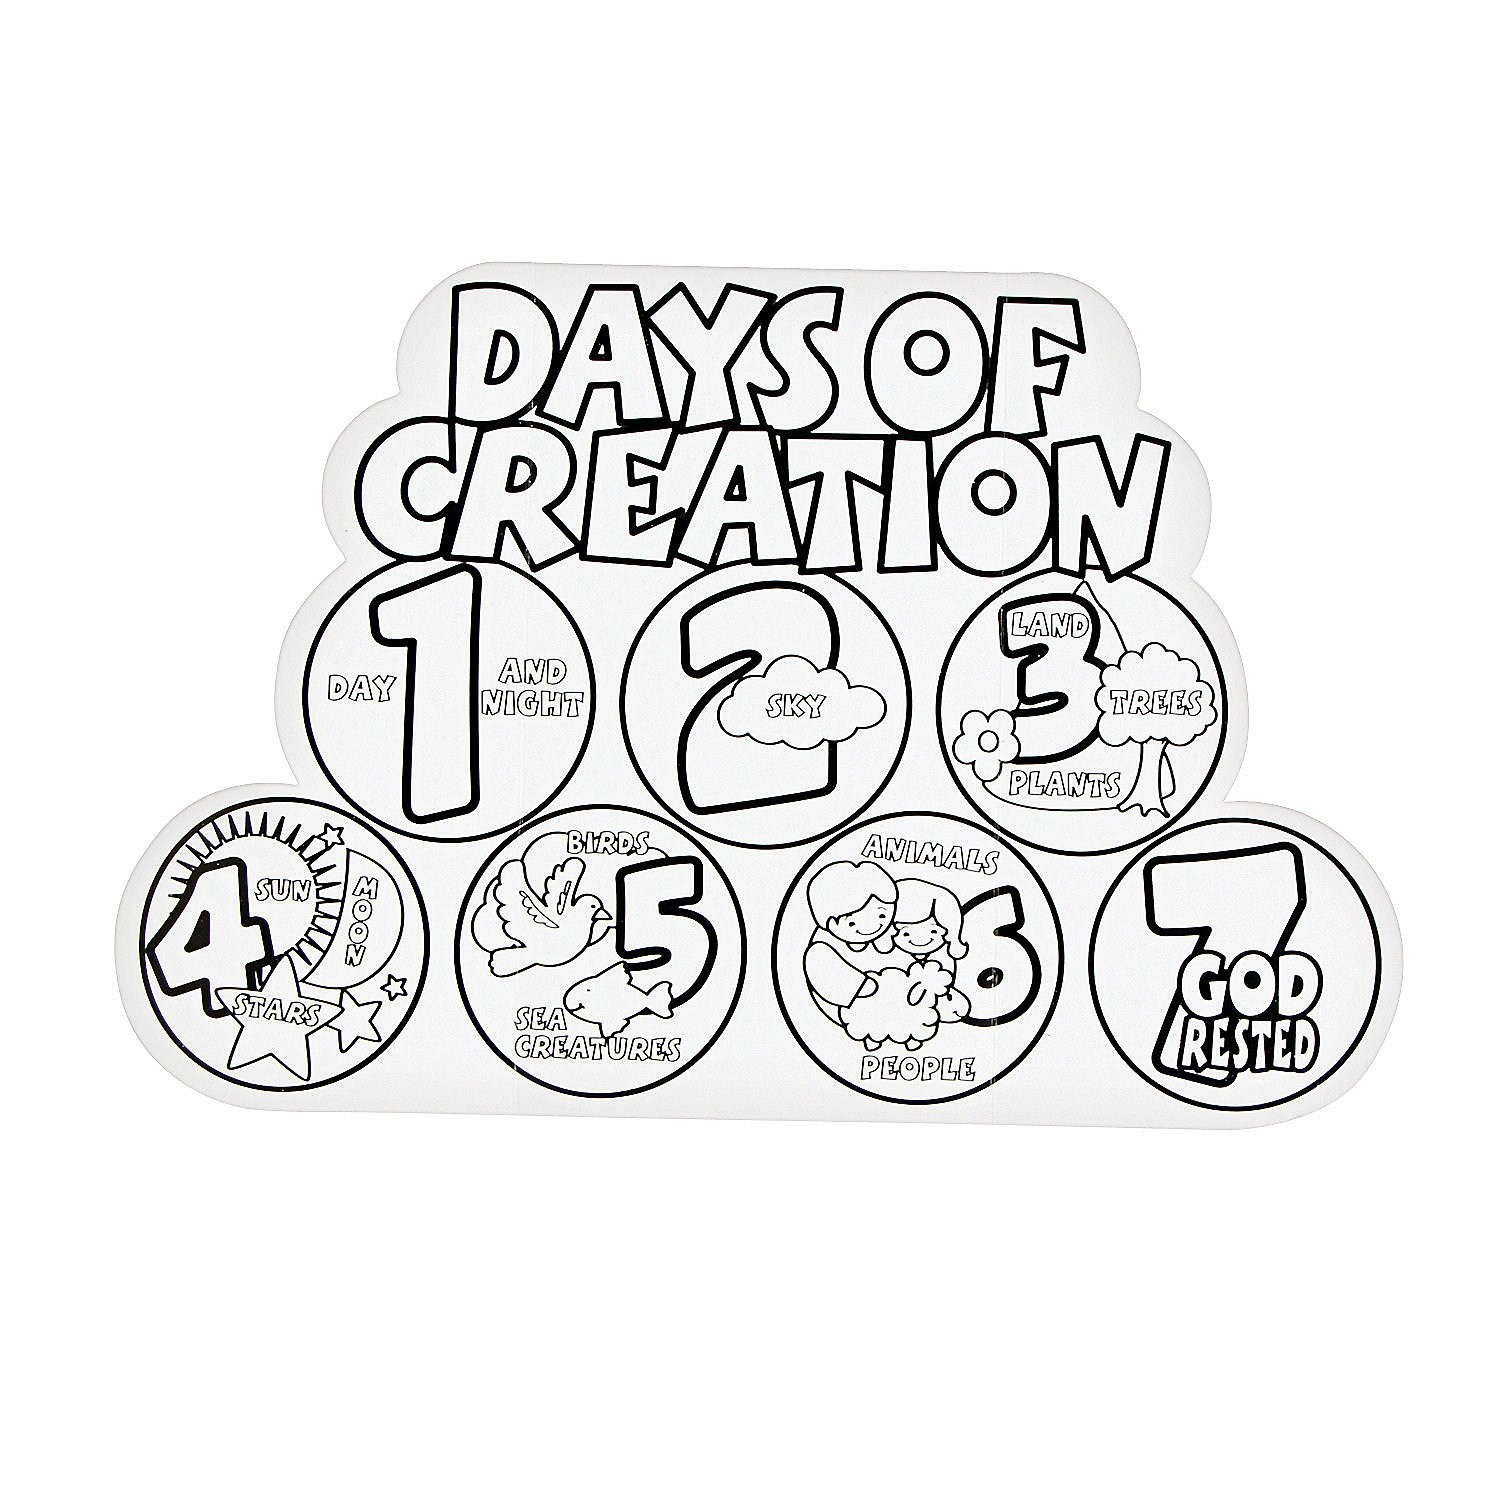 1500x1500 Days Of Creation Coloring Pages Qqa Me At Free Printable